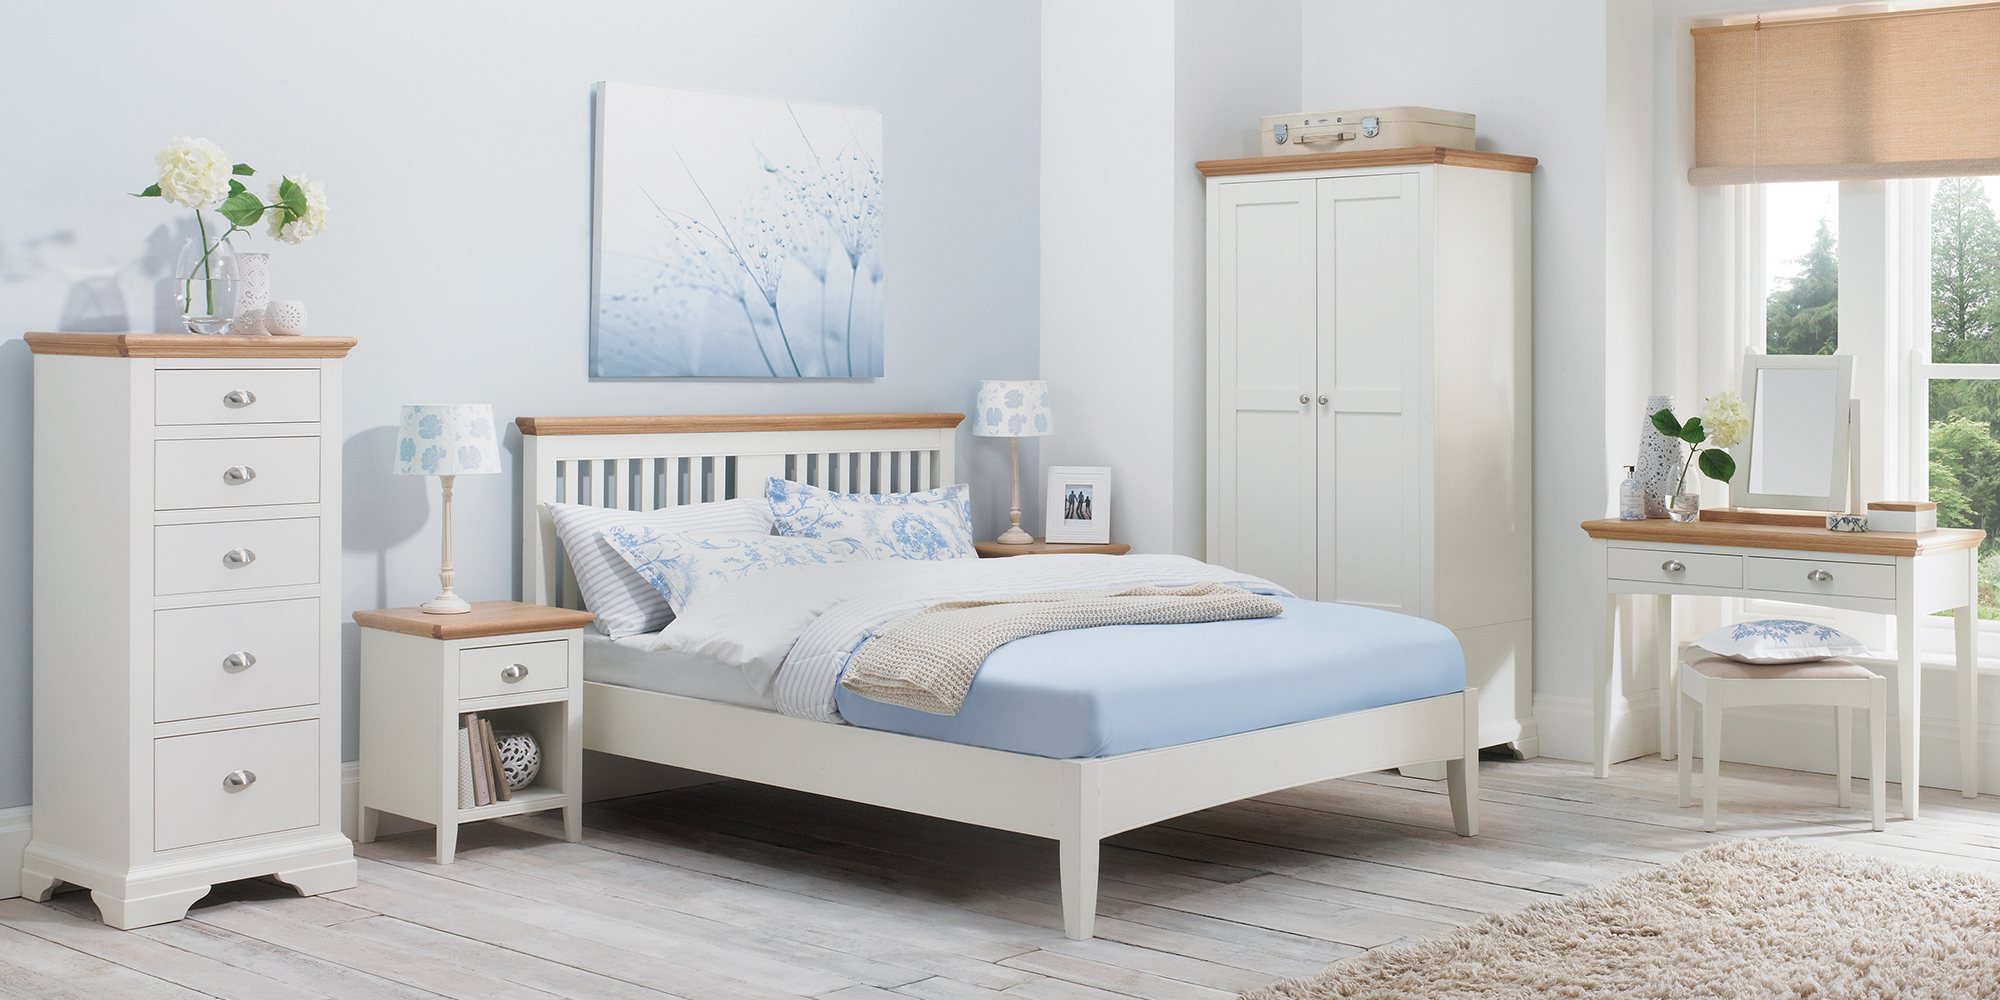 KYRA TWO TONE BEDROOM SET